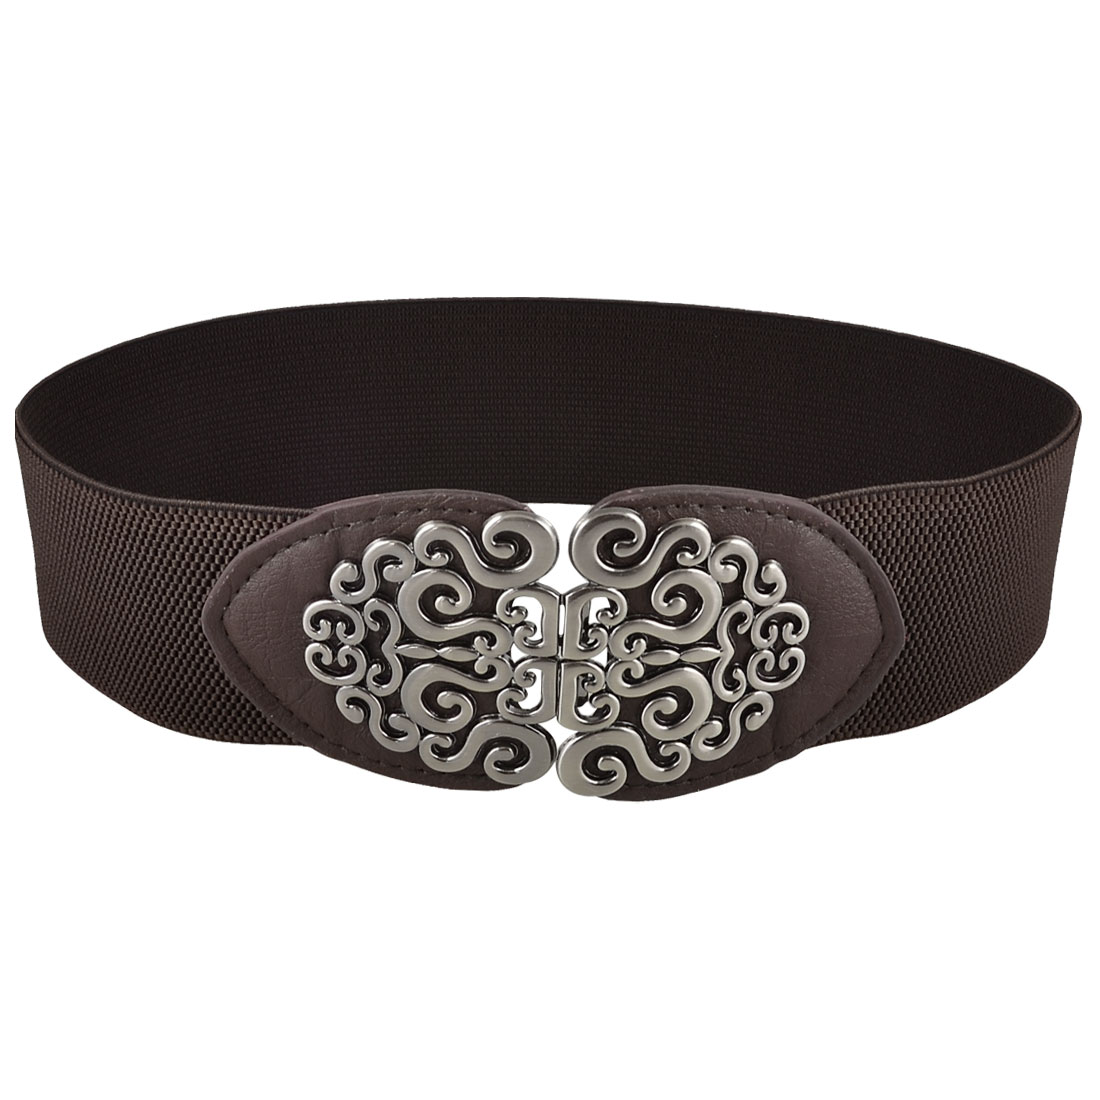 Woman Auspicious Clouds Interlocking Closure Stretch Cinch Waist Belt Dark Brown